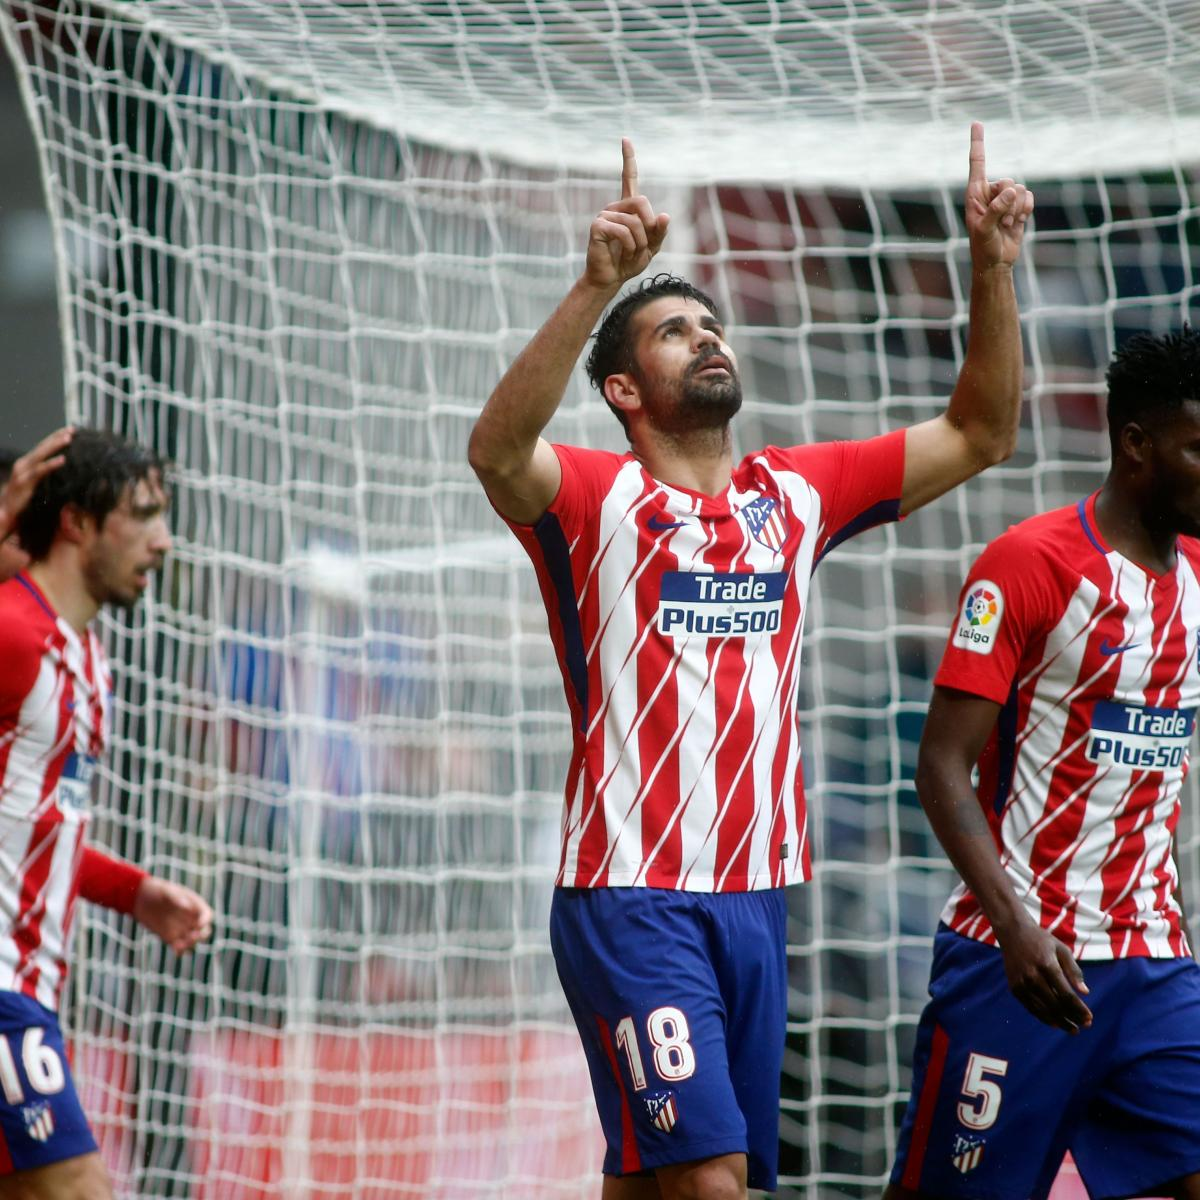 La liga results 2018 scores and updated table after saturday 39 s week 18 matches bleacher - La liga latest results and table ...